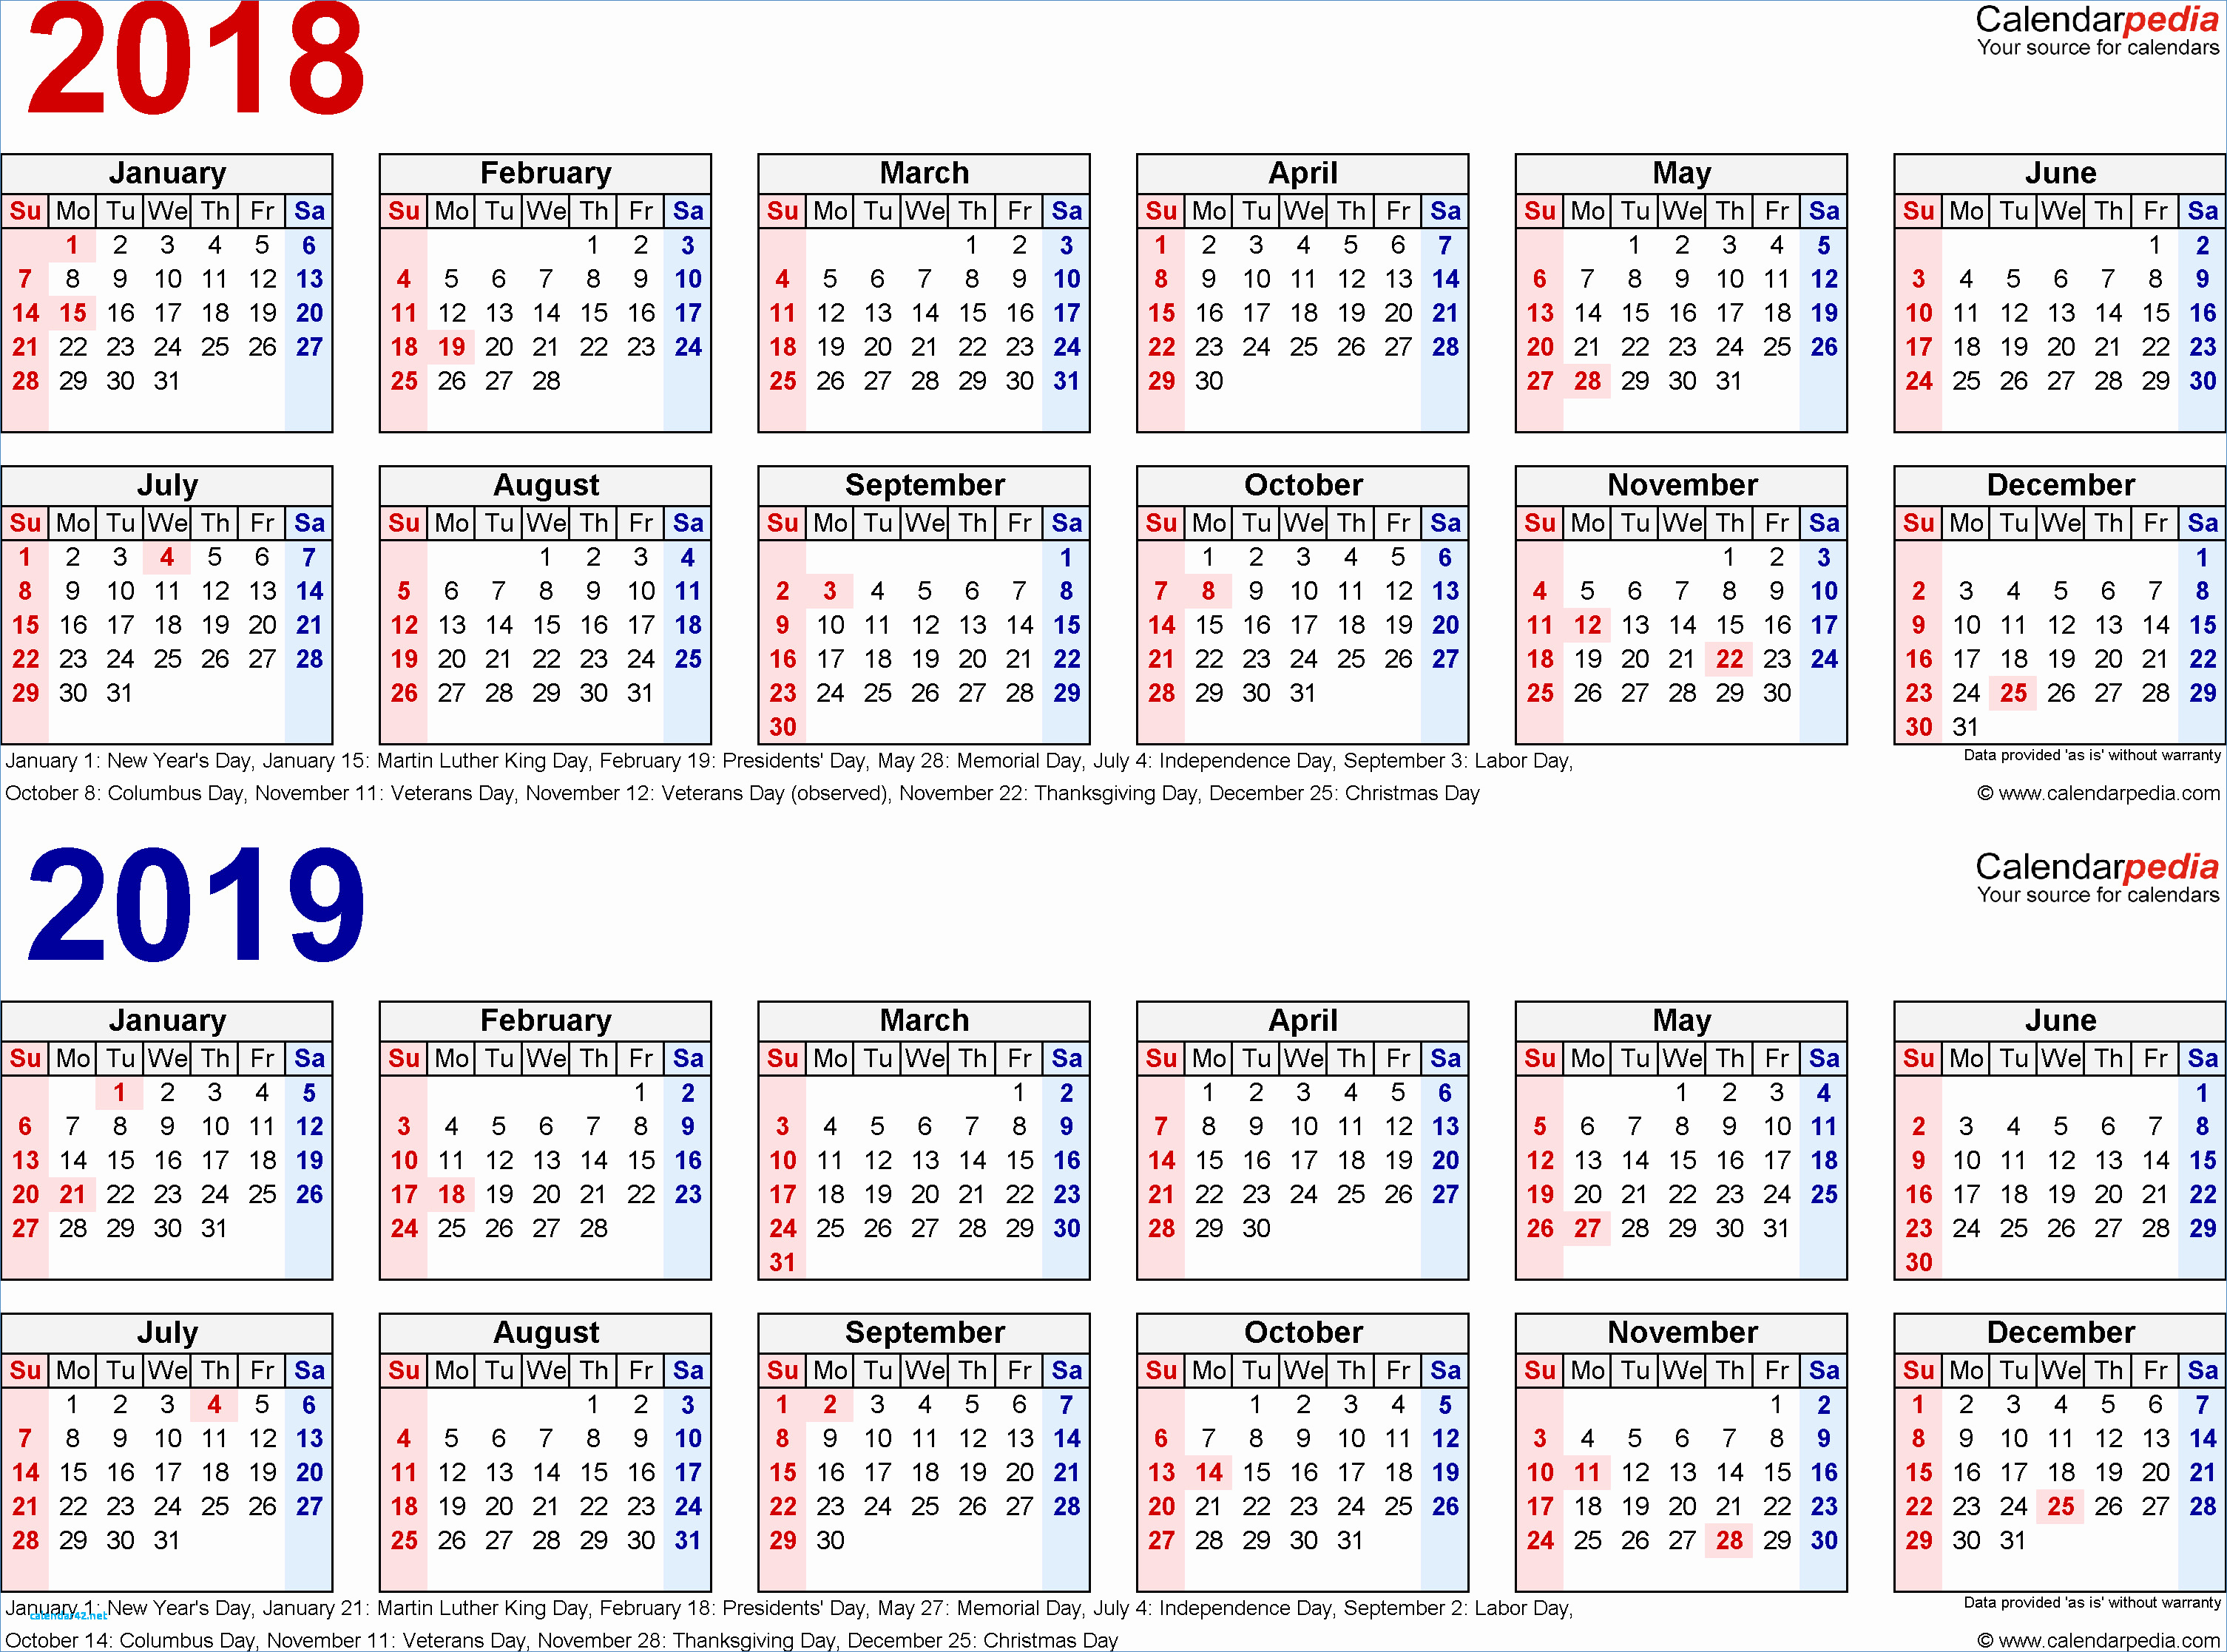 Free Printable 2018 2019 Calendar With Holidays Awesome 2018 intended for 2020 Payroll Calendar For Public Servants Qld